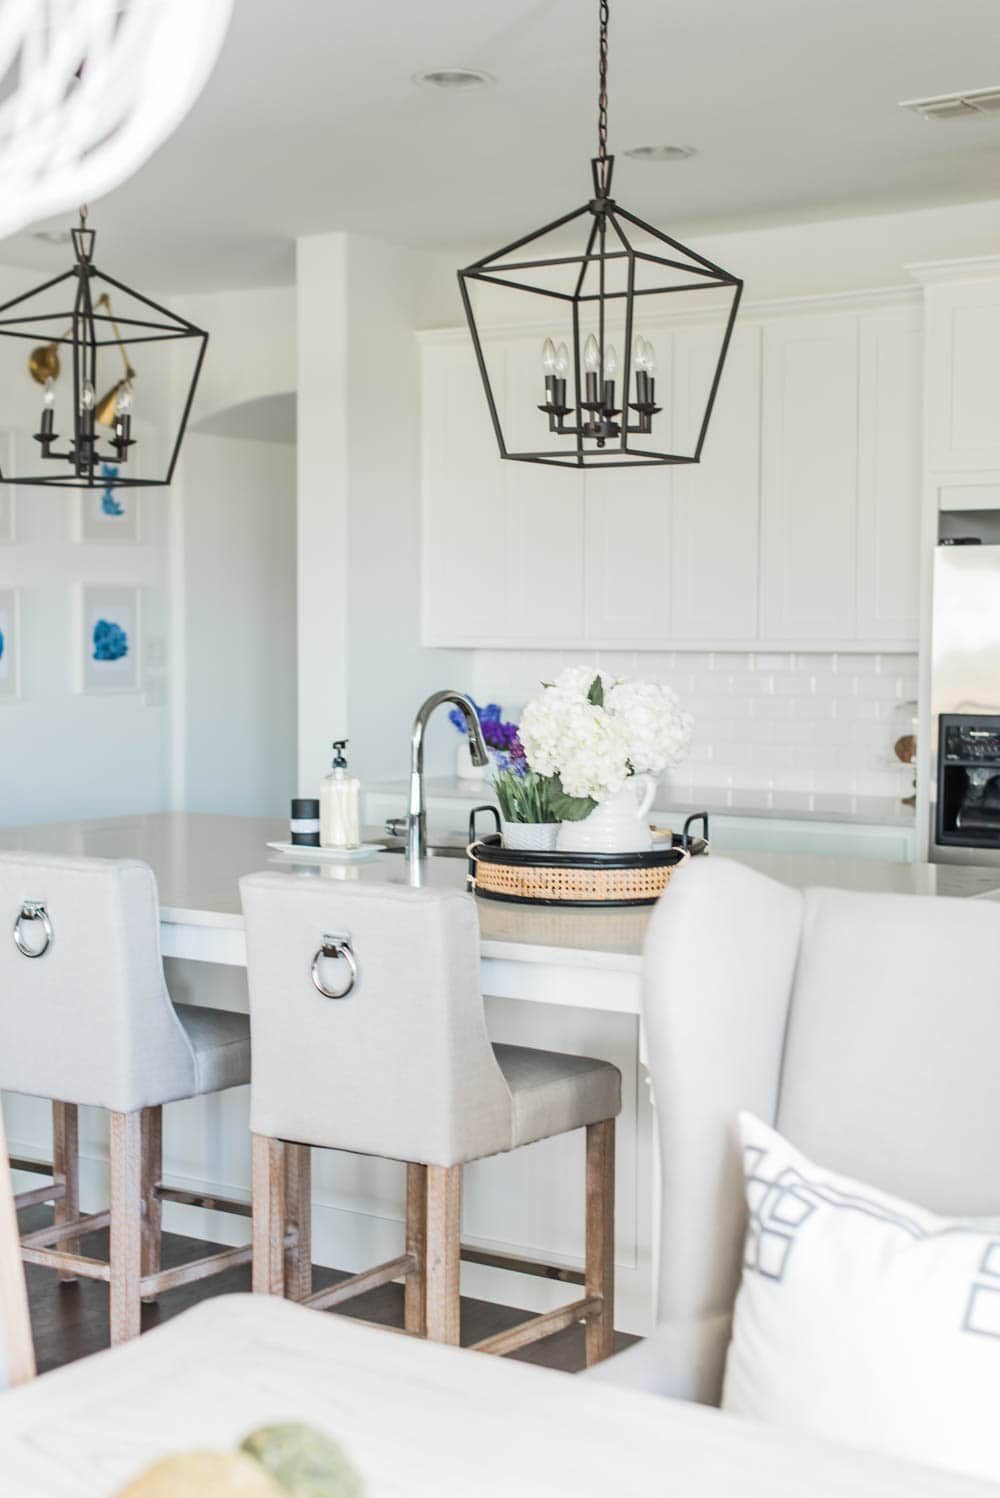 Beautiful summer accents in this all white kitchen. More white kitchen ideas on https://ablissfulnest.com #ABlissfulNest #whitekitchen #kitcheninspiration #kitchenideas